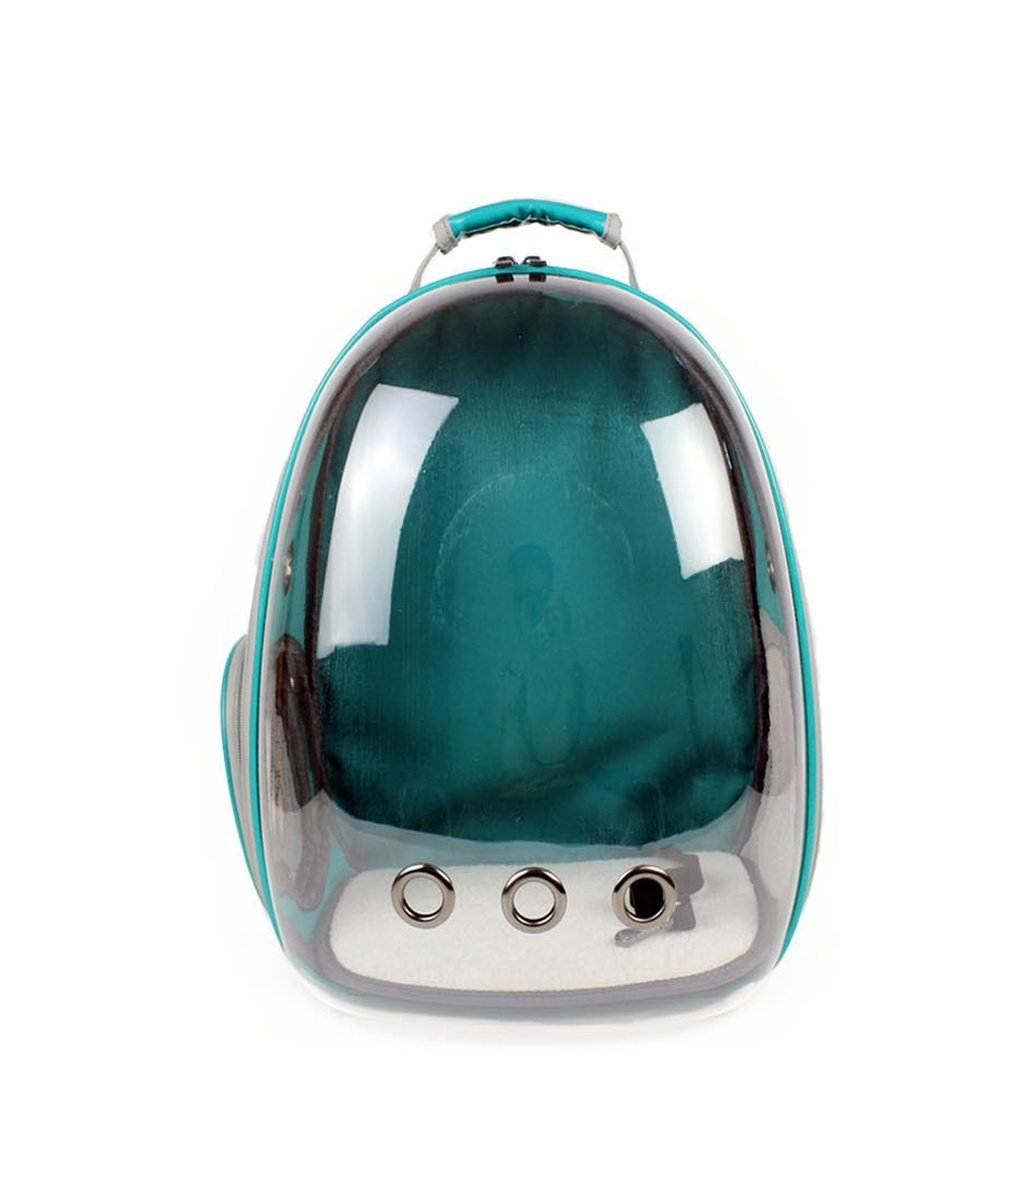 Green Transparent Space Waterproof Panoramic Pet Bag Portable Pet Cage Travel Walking Bus Suitable for Cat Puppy (29cm27cm42cm Green Yellow Red bluee Suitable for 8kg Cat 6kg kg Dog)